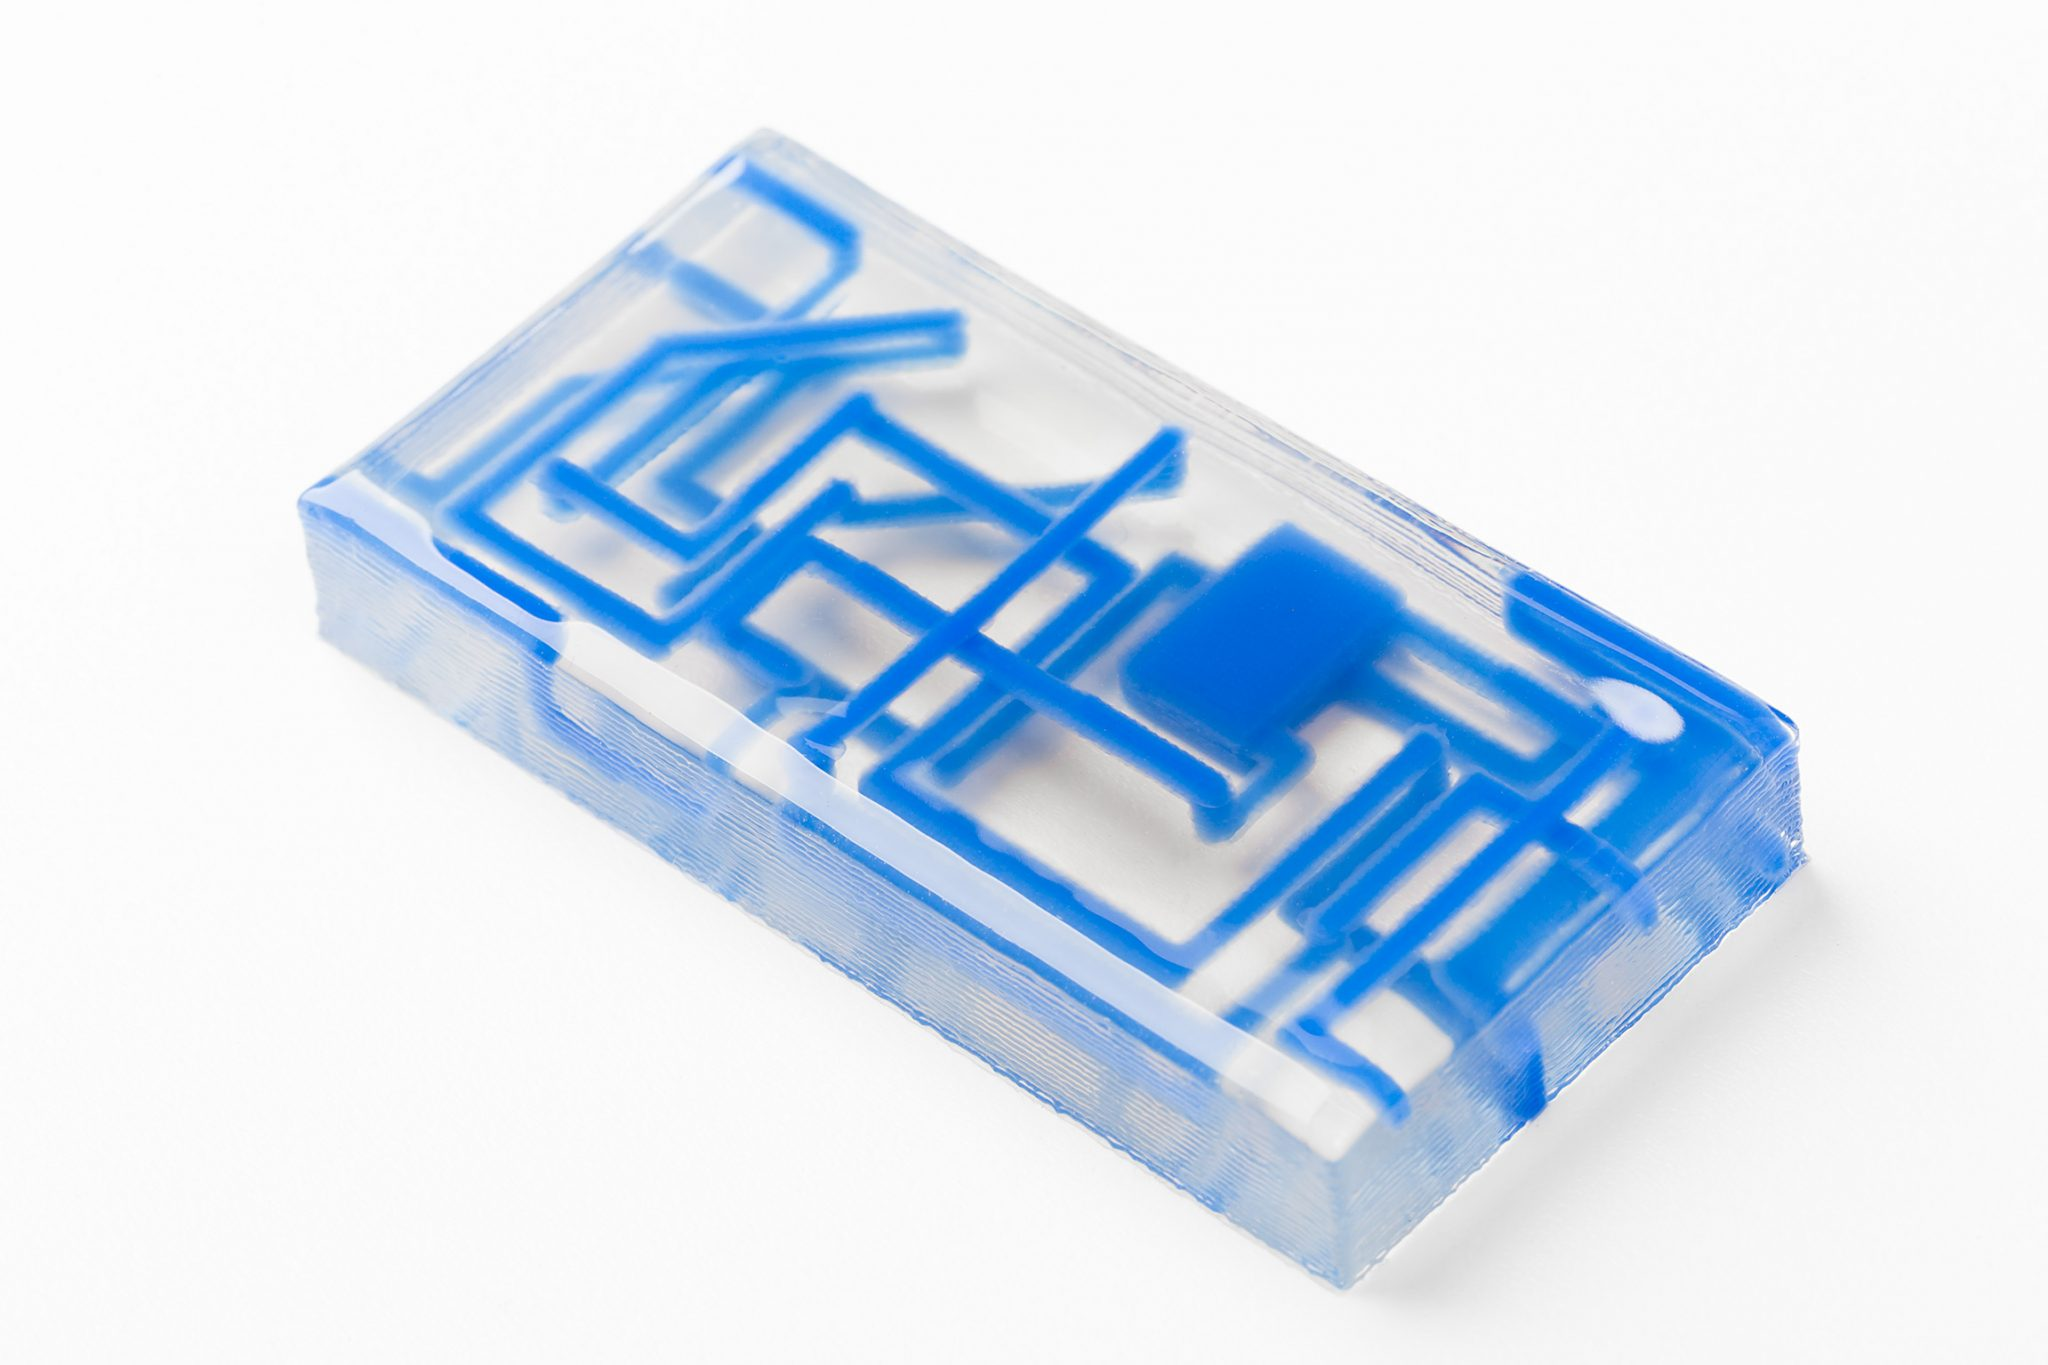 A sample of ACEO multimaterial 3D printed silicone. Photo via ACEO